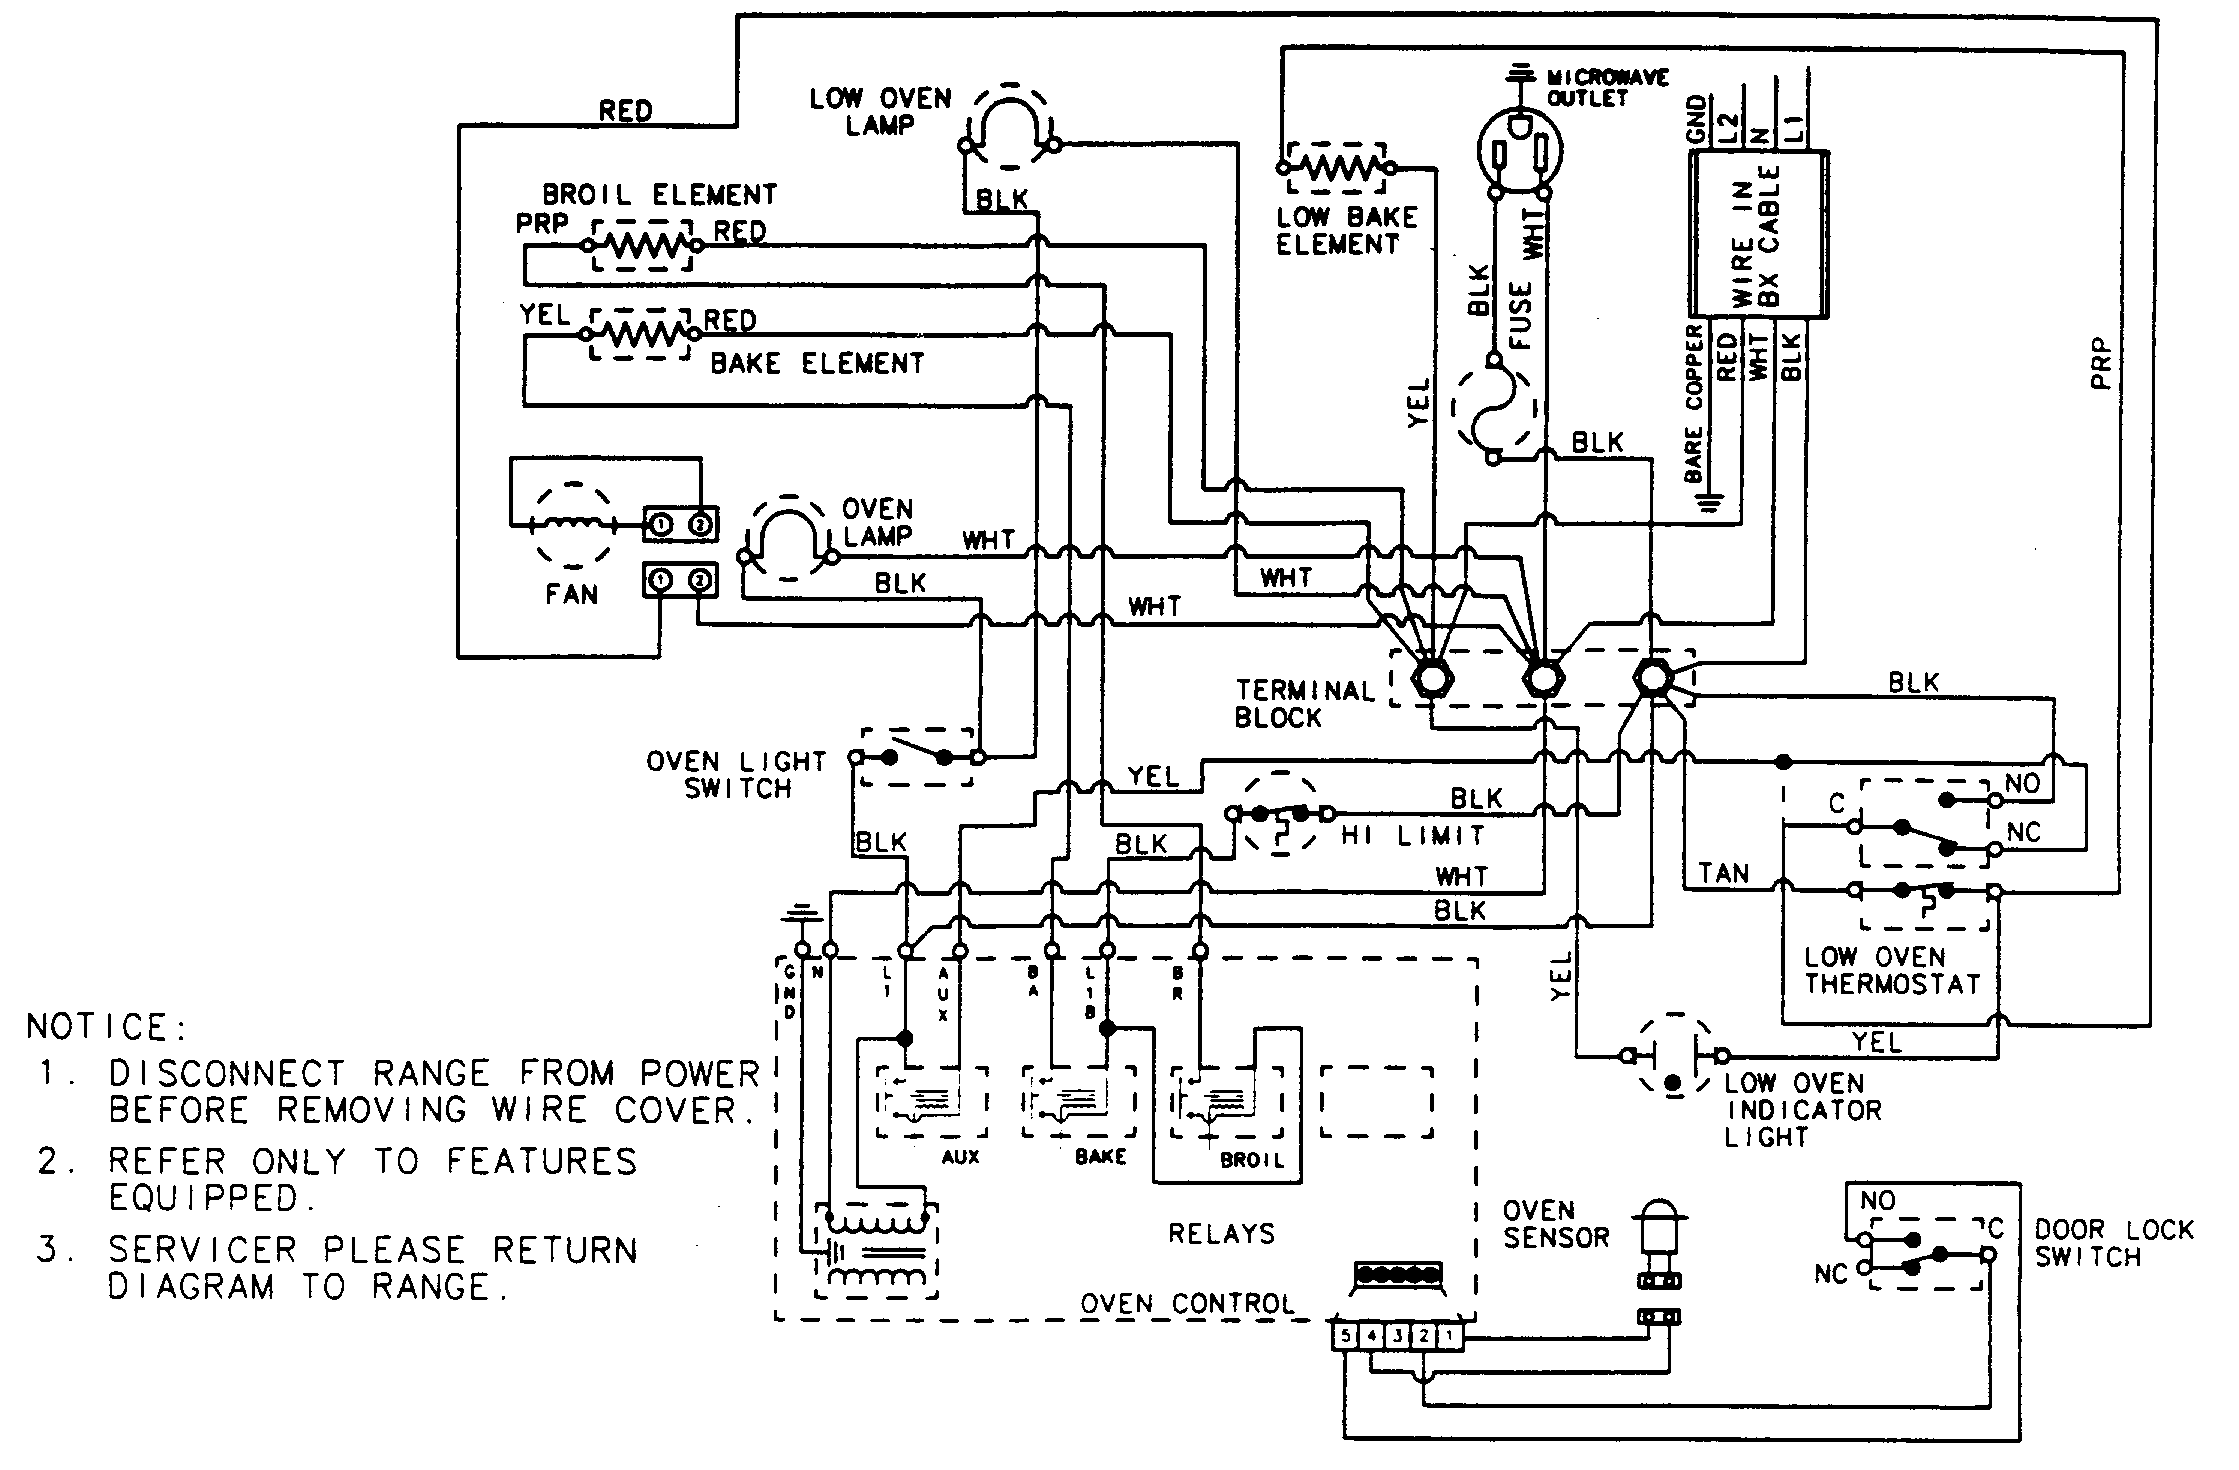 dryer schematics with Electric Oven Wiring Diagram on Whirlpool Drive Motor 279787 Ap3094233 moreover Wiring Diagrams Whirlpool Cabrio Washer Manual Frigidaire Dryer Mesmerizing Amana Diagram additionally 4234703030 further Sr F270 Circuit Diagram Refrigerator Troubleshooting Schematics furthermore TM 10 3510 208 120031.